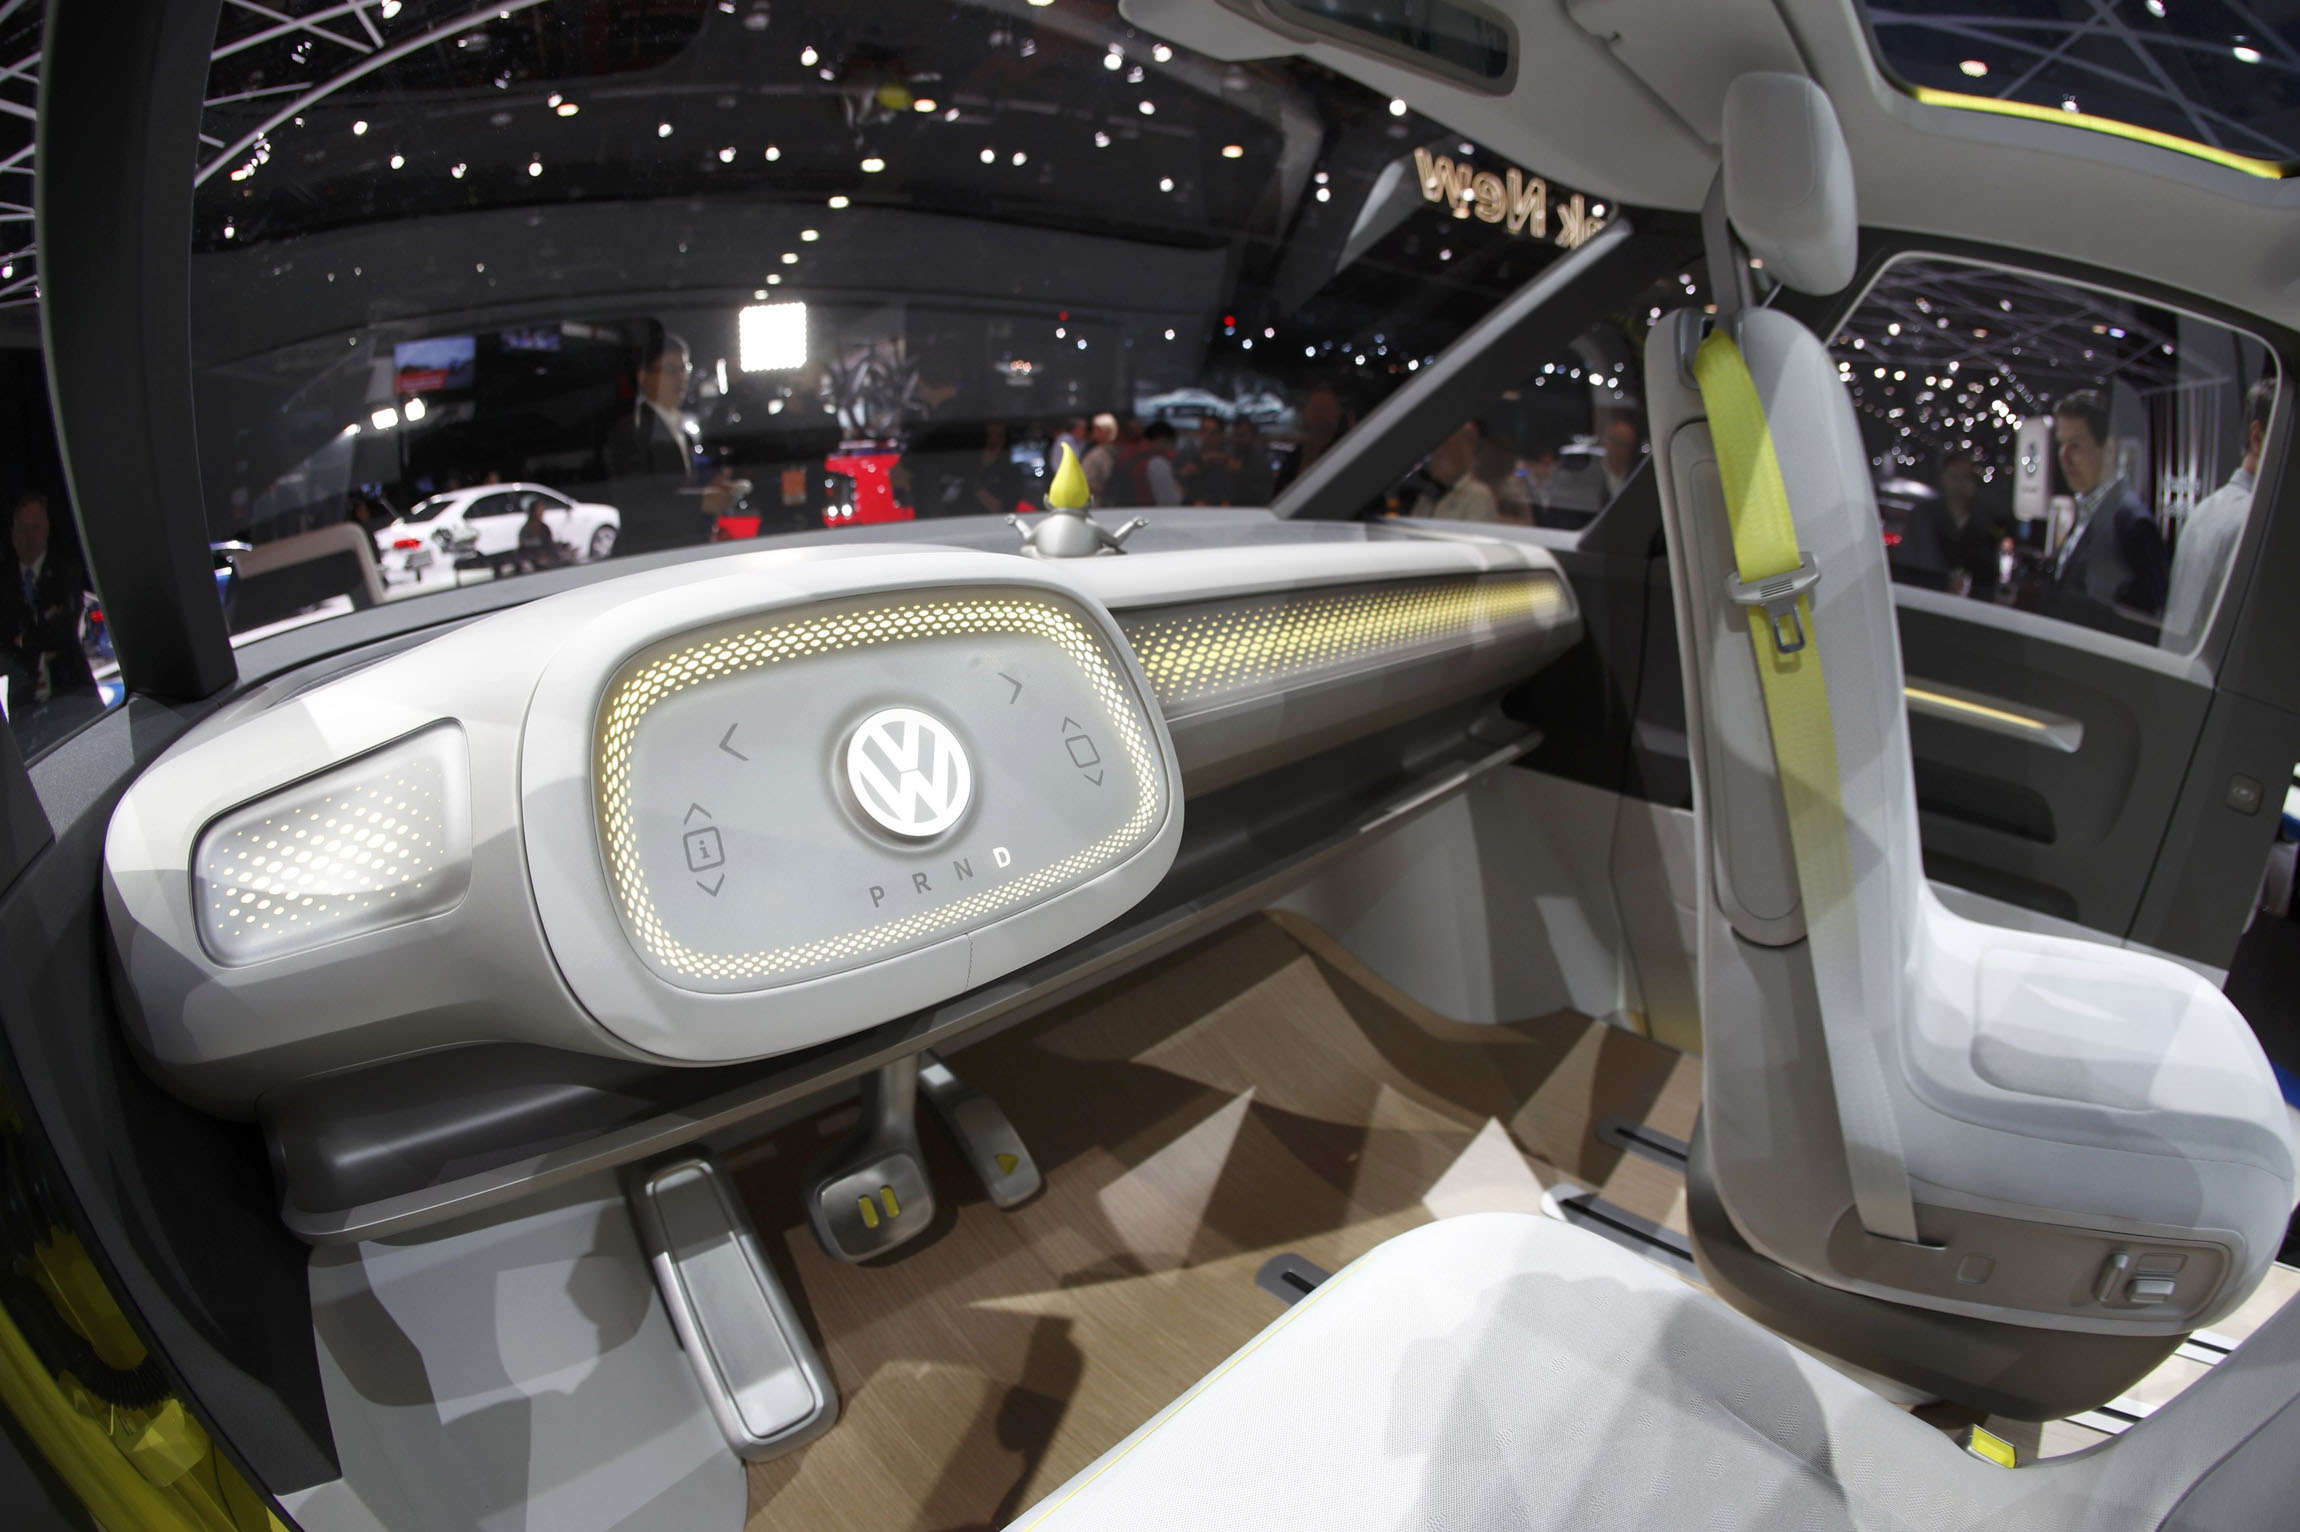 Interior view of the Volkswagen I.D. Buzz electric concept vehicle being displayed during the North American International Auto Show in Detroit